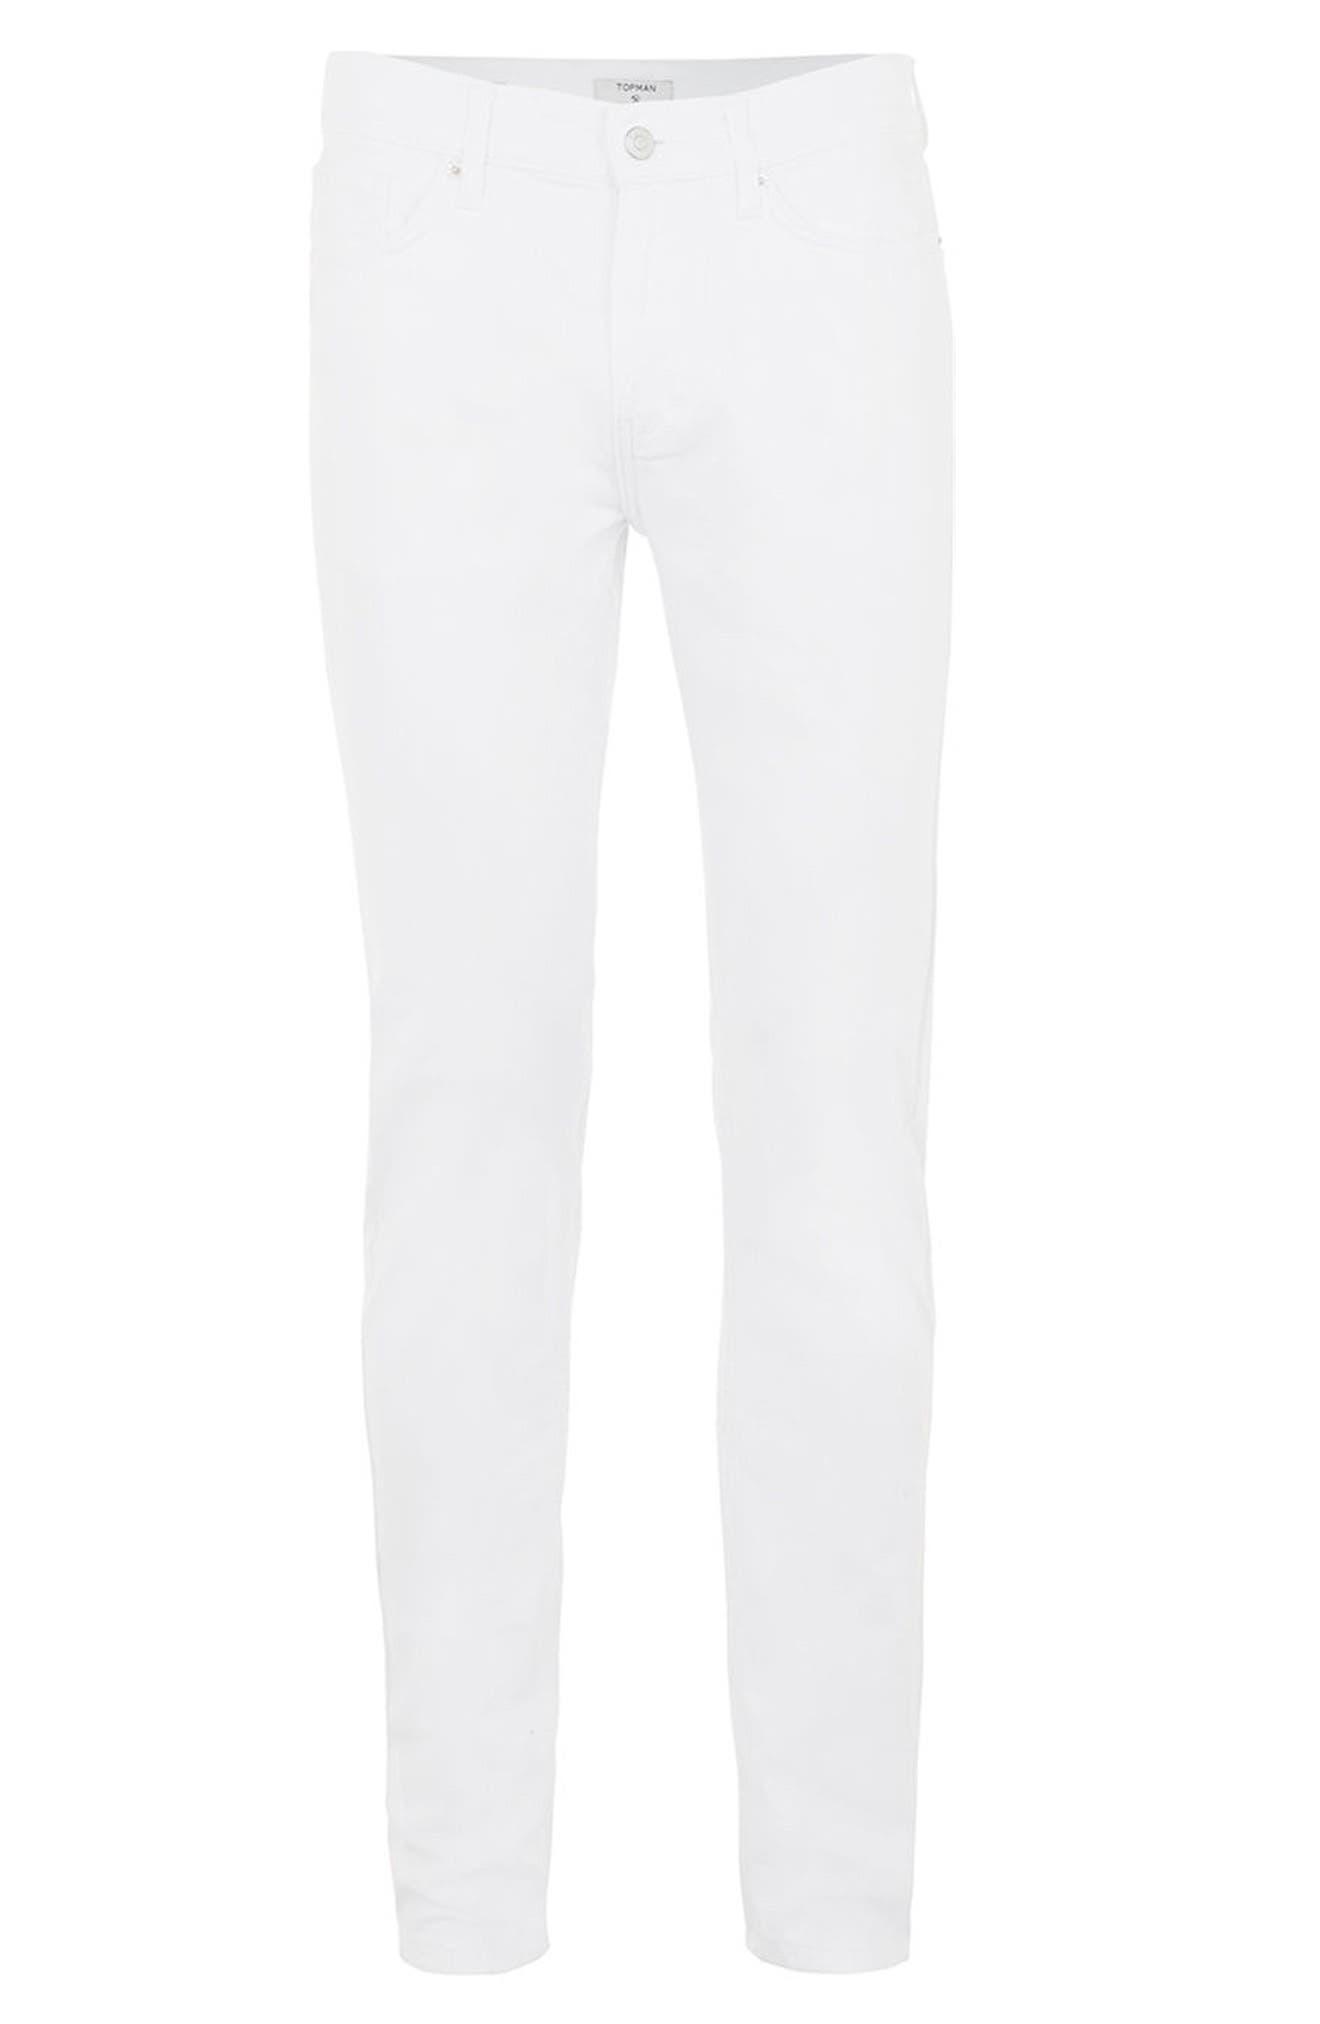 Stretch Skinny Fit Jeans,                             Alternate thumbnail 4, color,